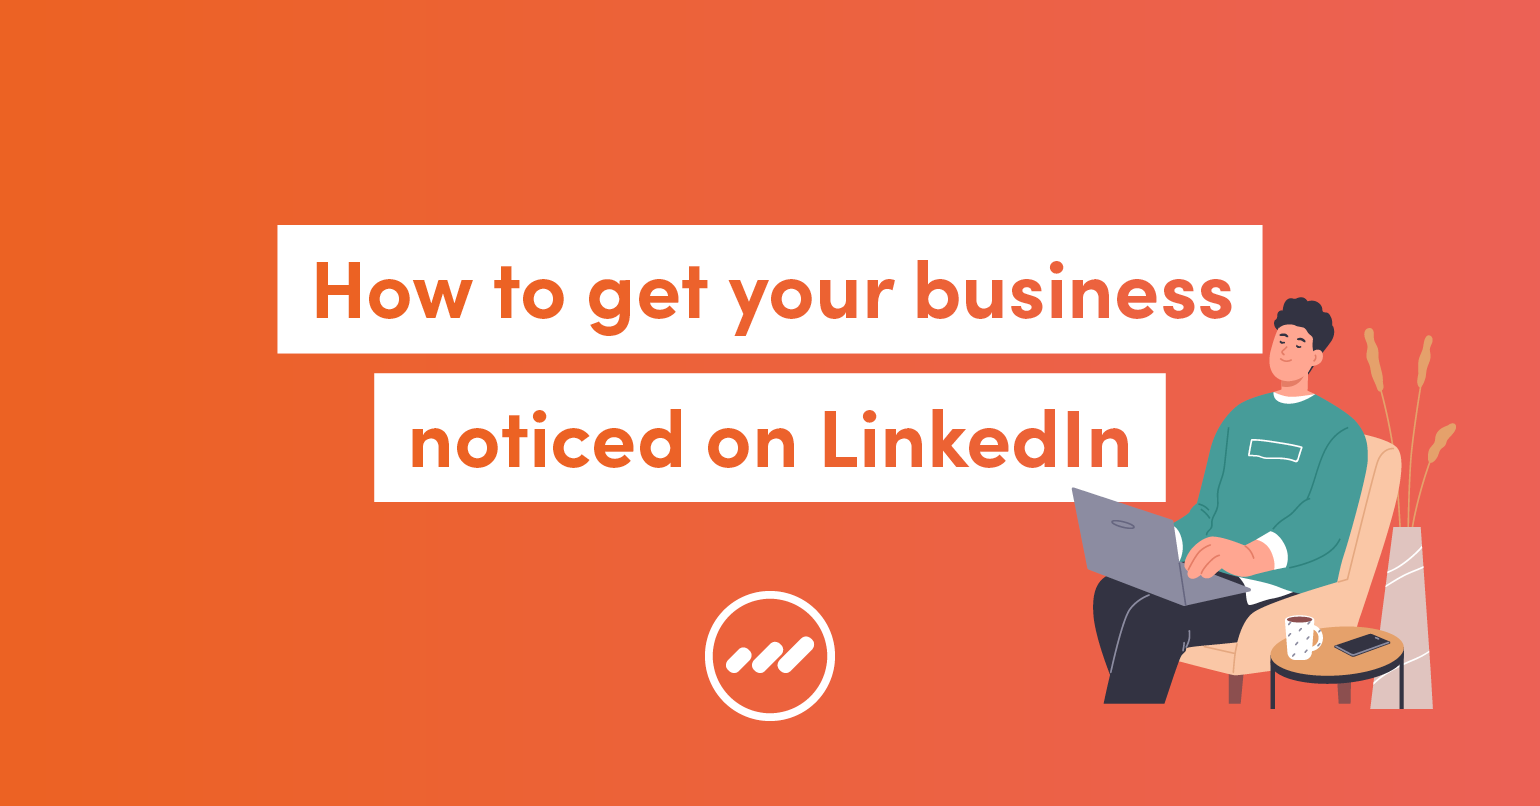 MM-HowToGetBusinessNoticedOnLinkedin-Blog